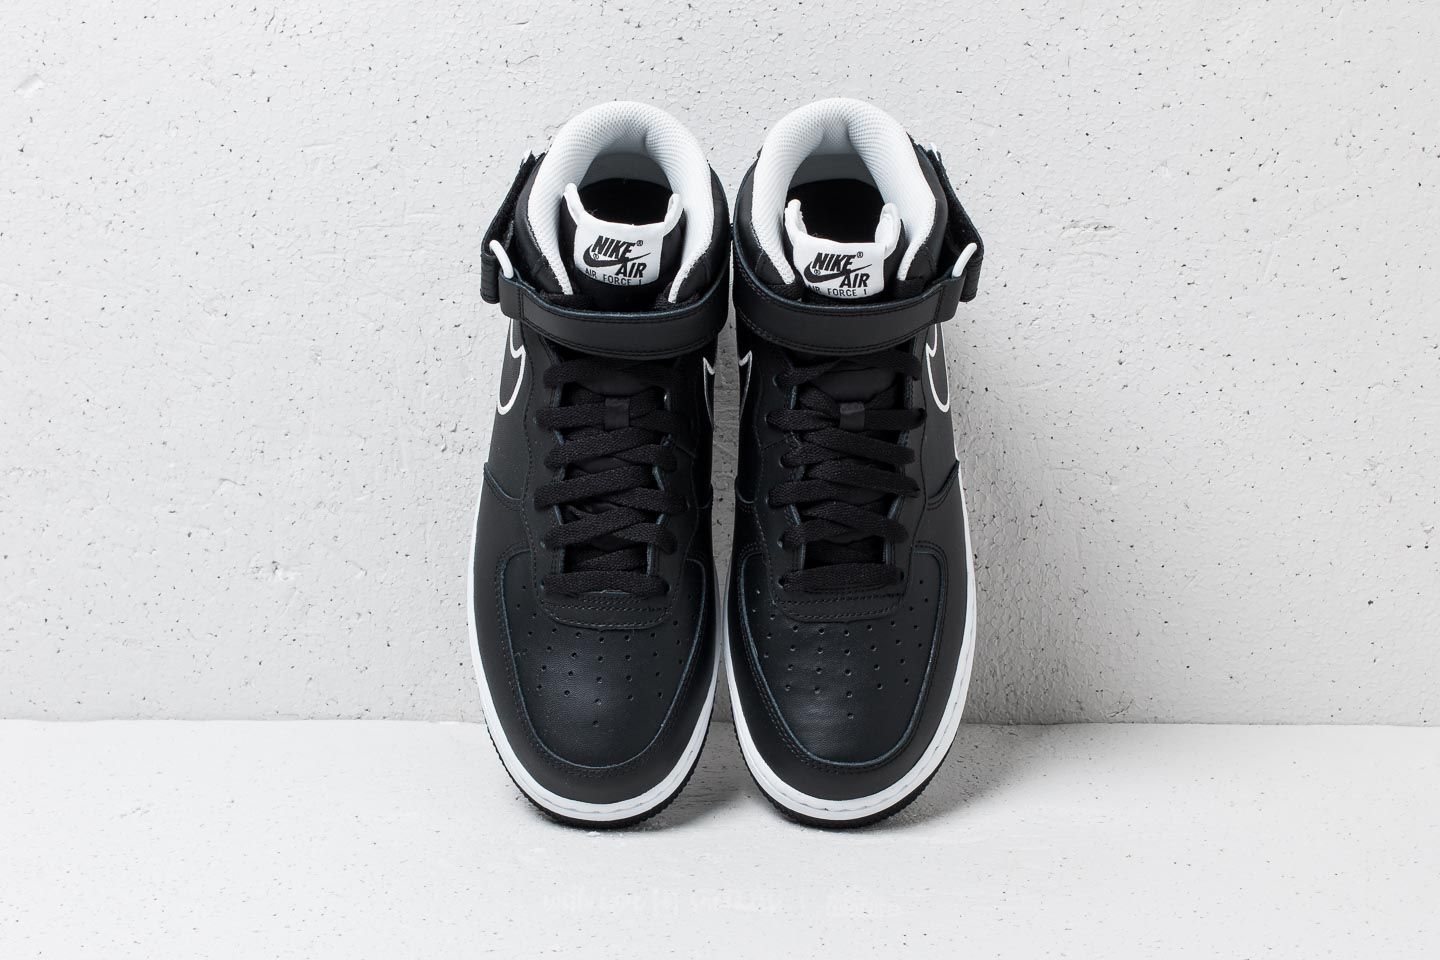 '07 Leather Nike Force Black WhiteFootshop 1 Mid Air NmOyv80wn